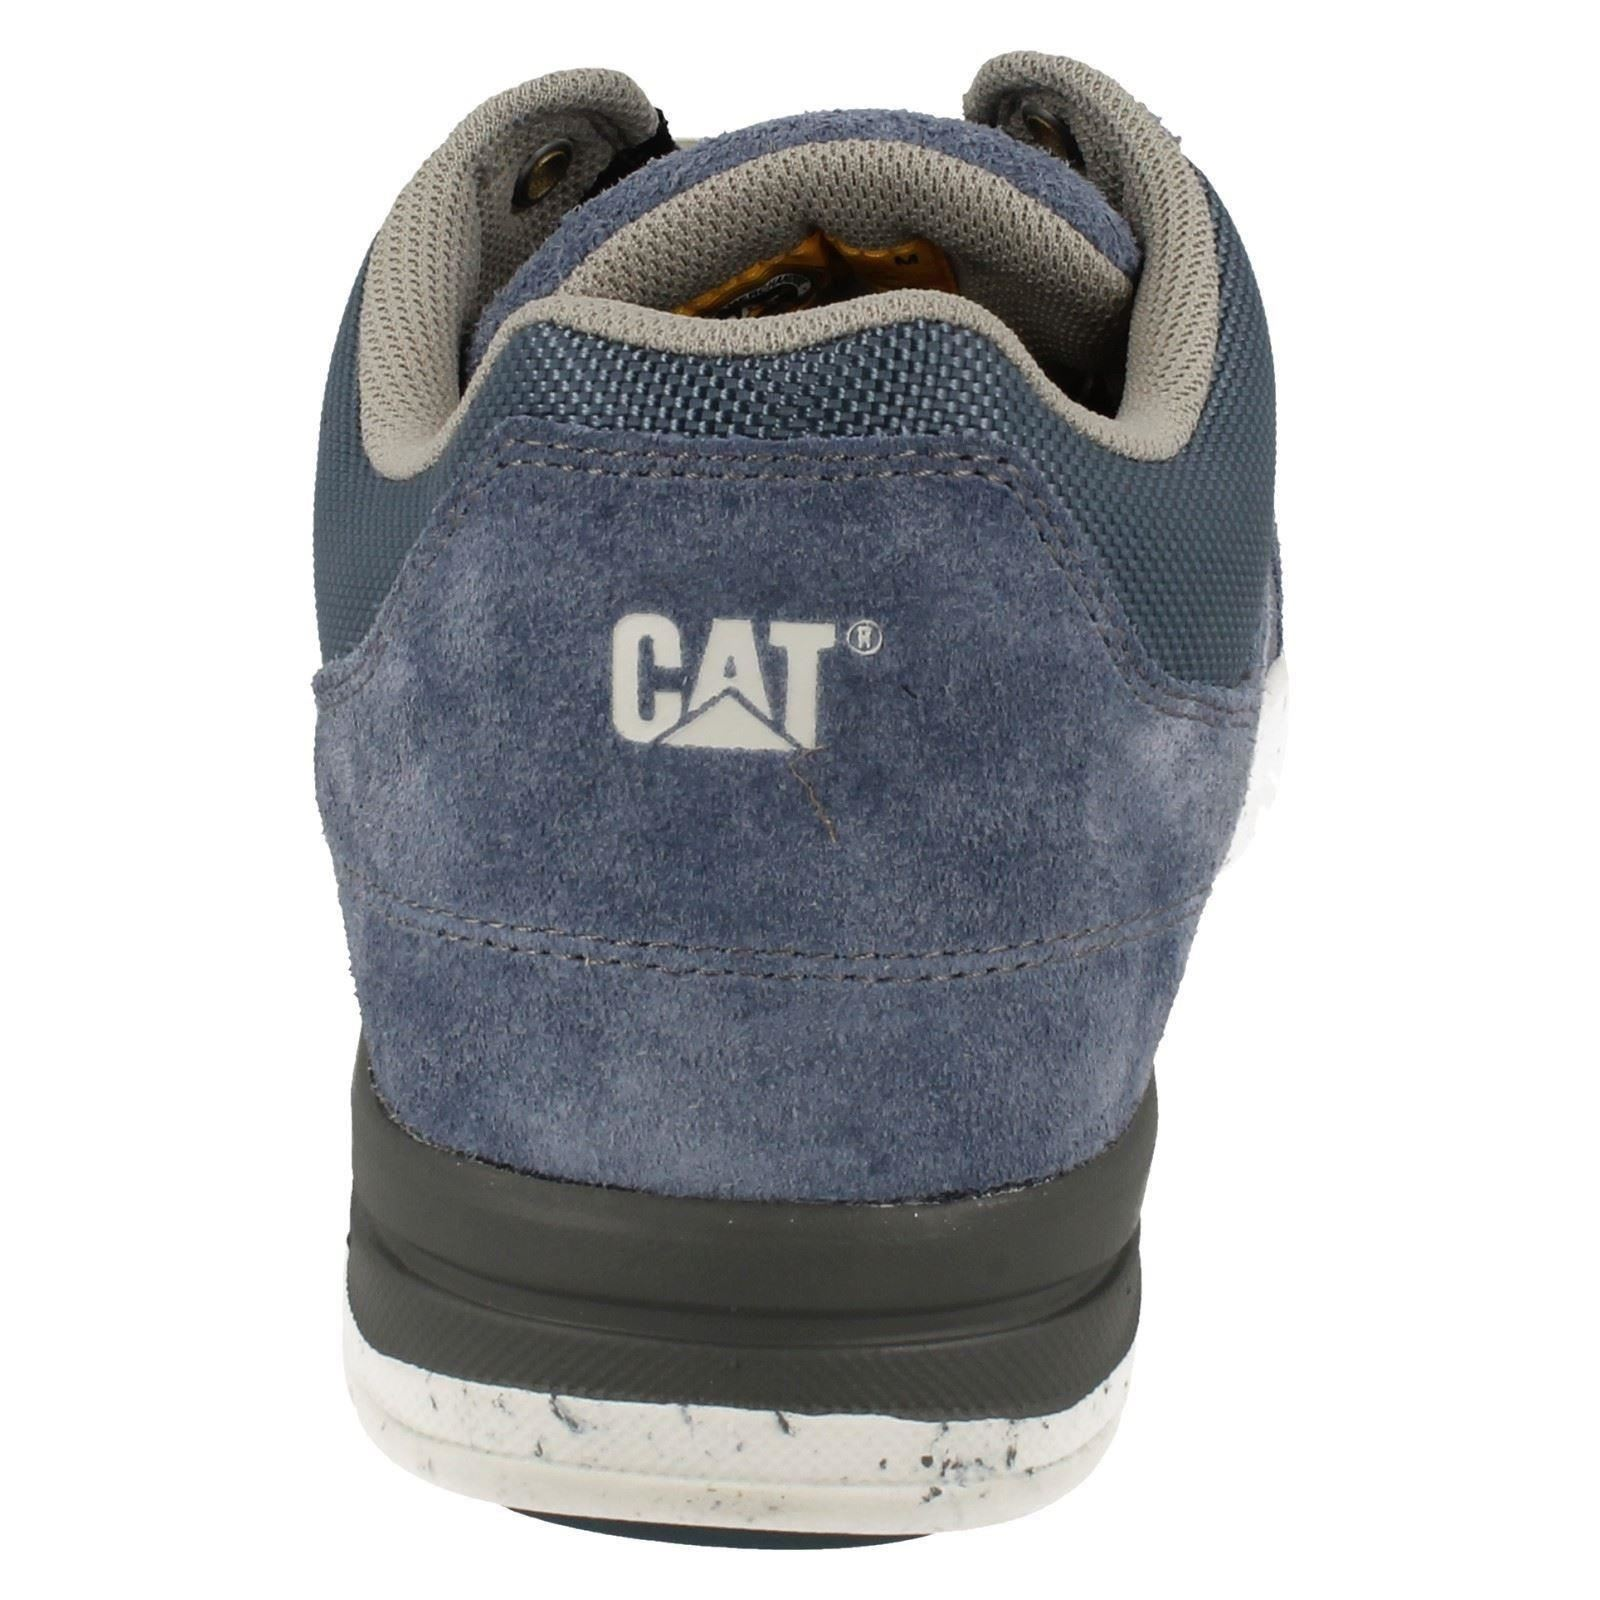 Mens Caterpillar Casual Lace Up Shoes Chasm